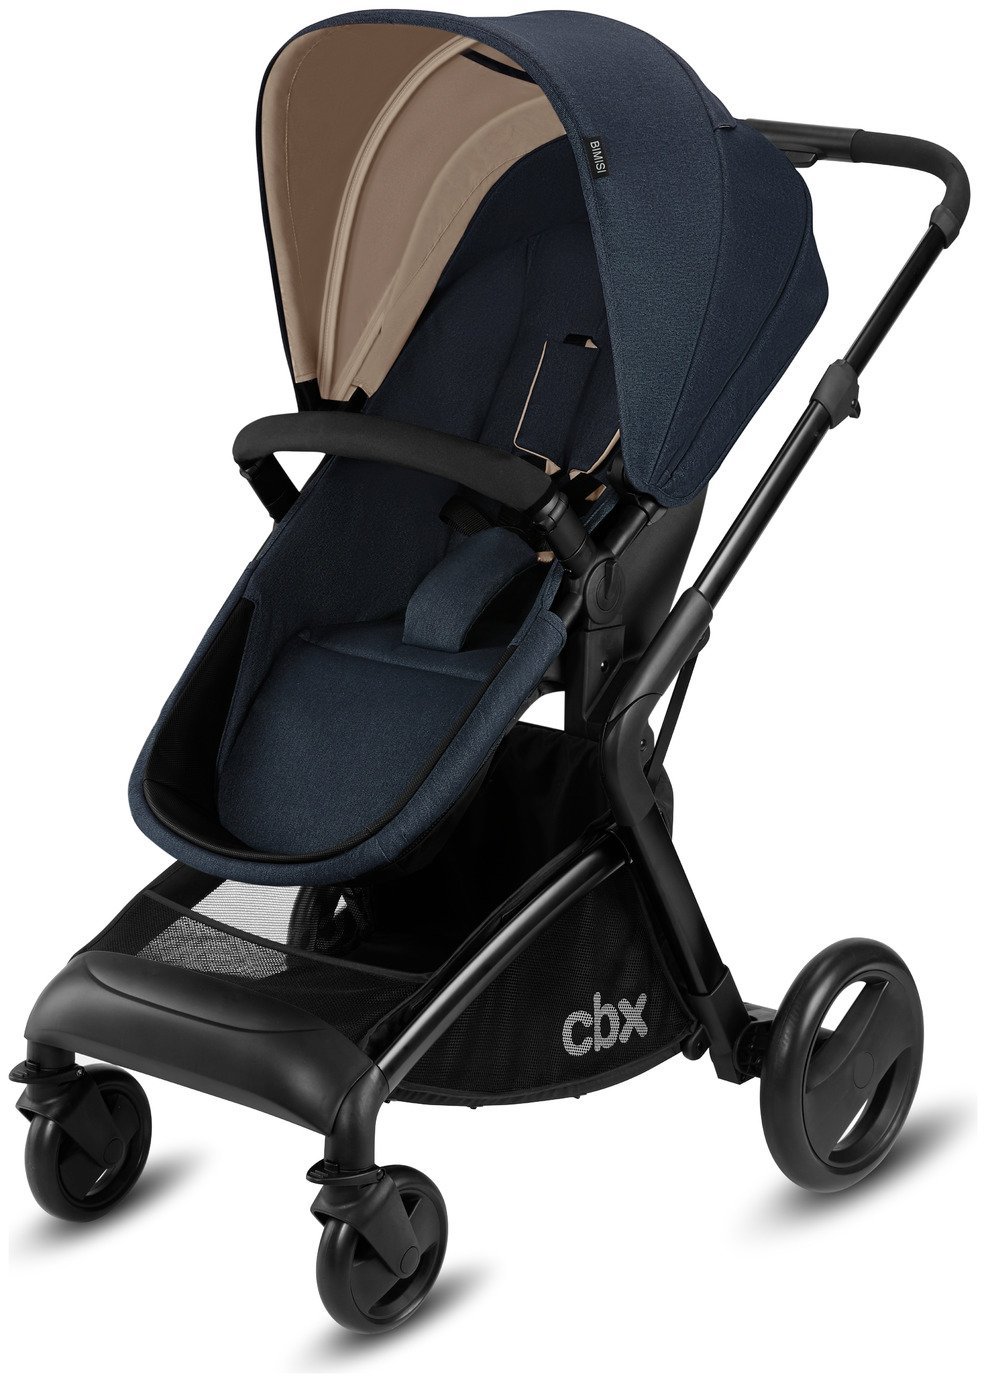 3 Wheel Prams Argos Cbx Bimisi Pure Pushchair 8034638 Argos Price Tracker